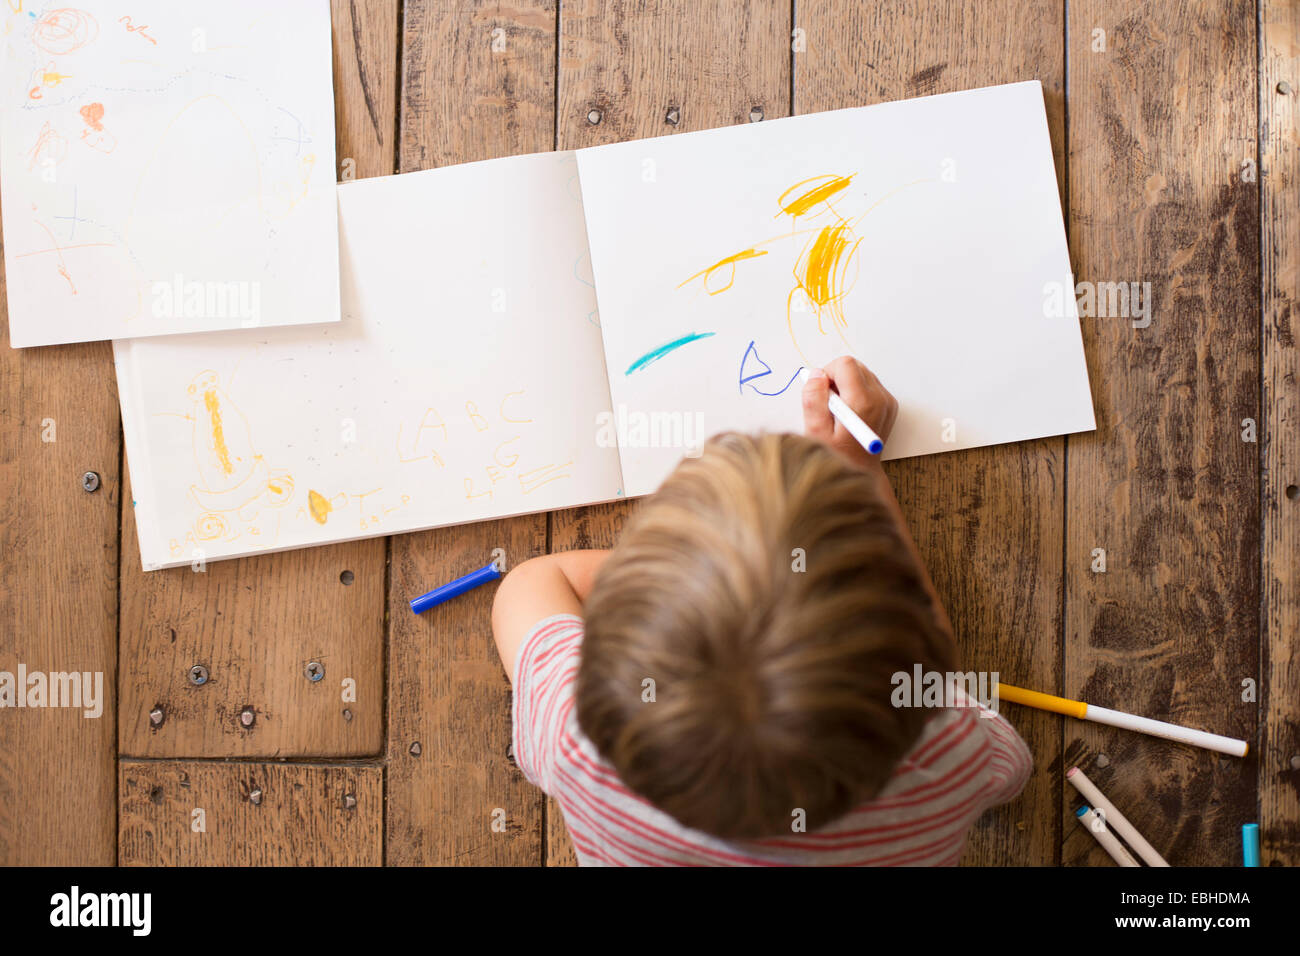 Young boy drawing on paper, high angle - Stock Image